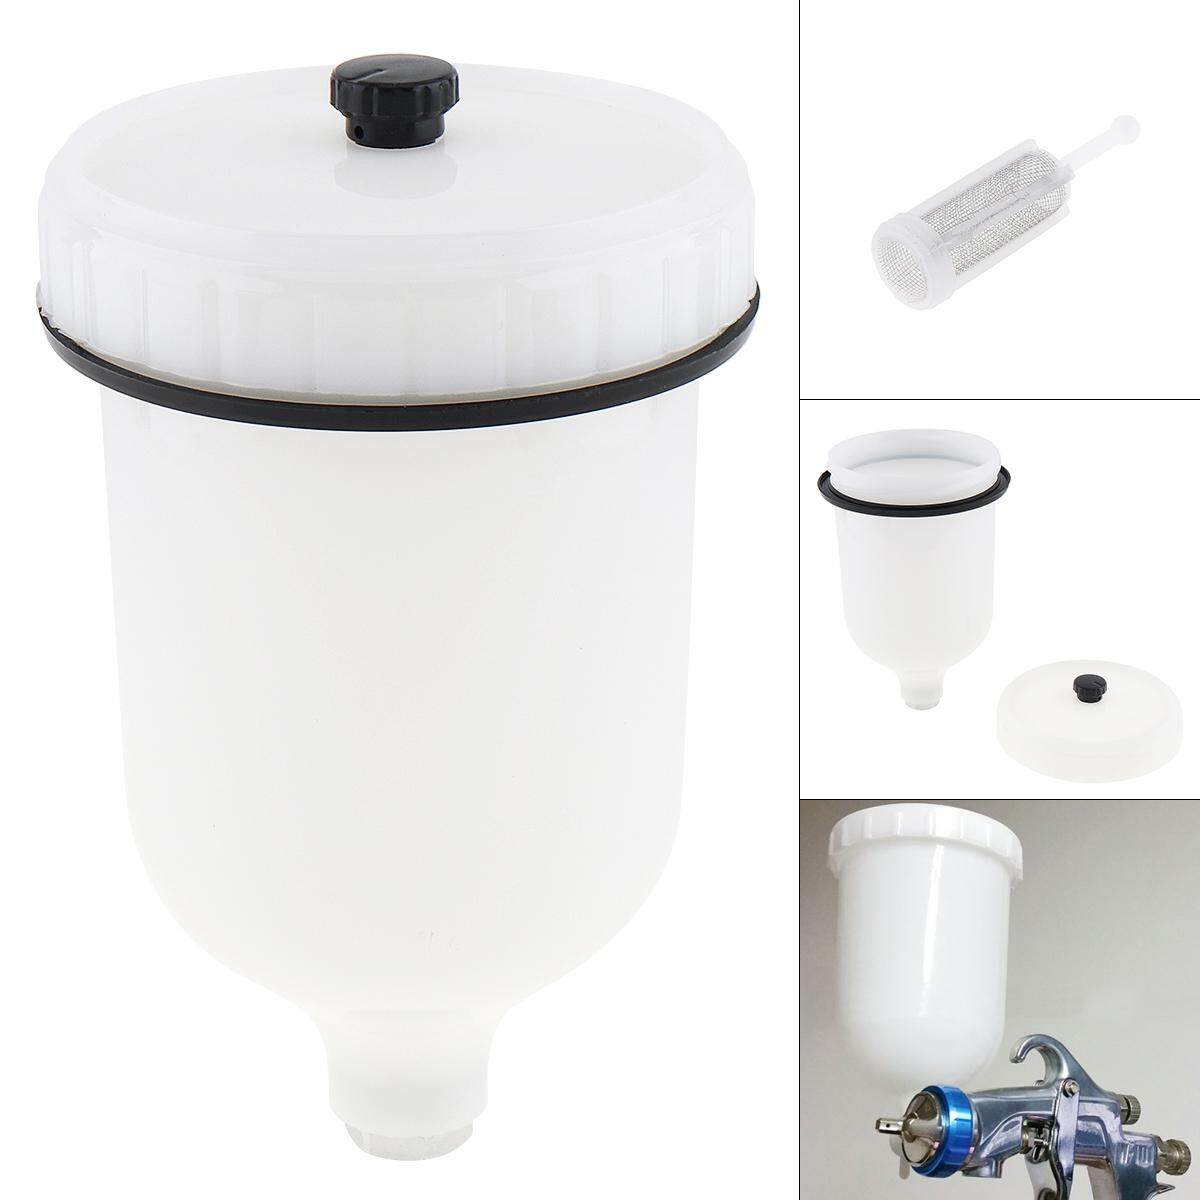 500ml Paint Cup ABS Pot with 2/3 Internal Thread and Small Funnel  for Holding Liquid